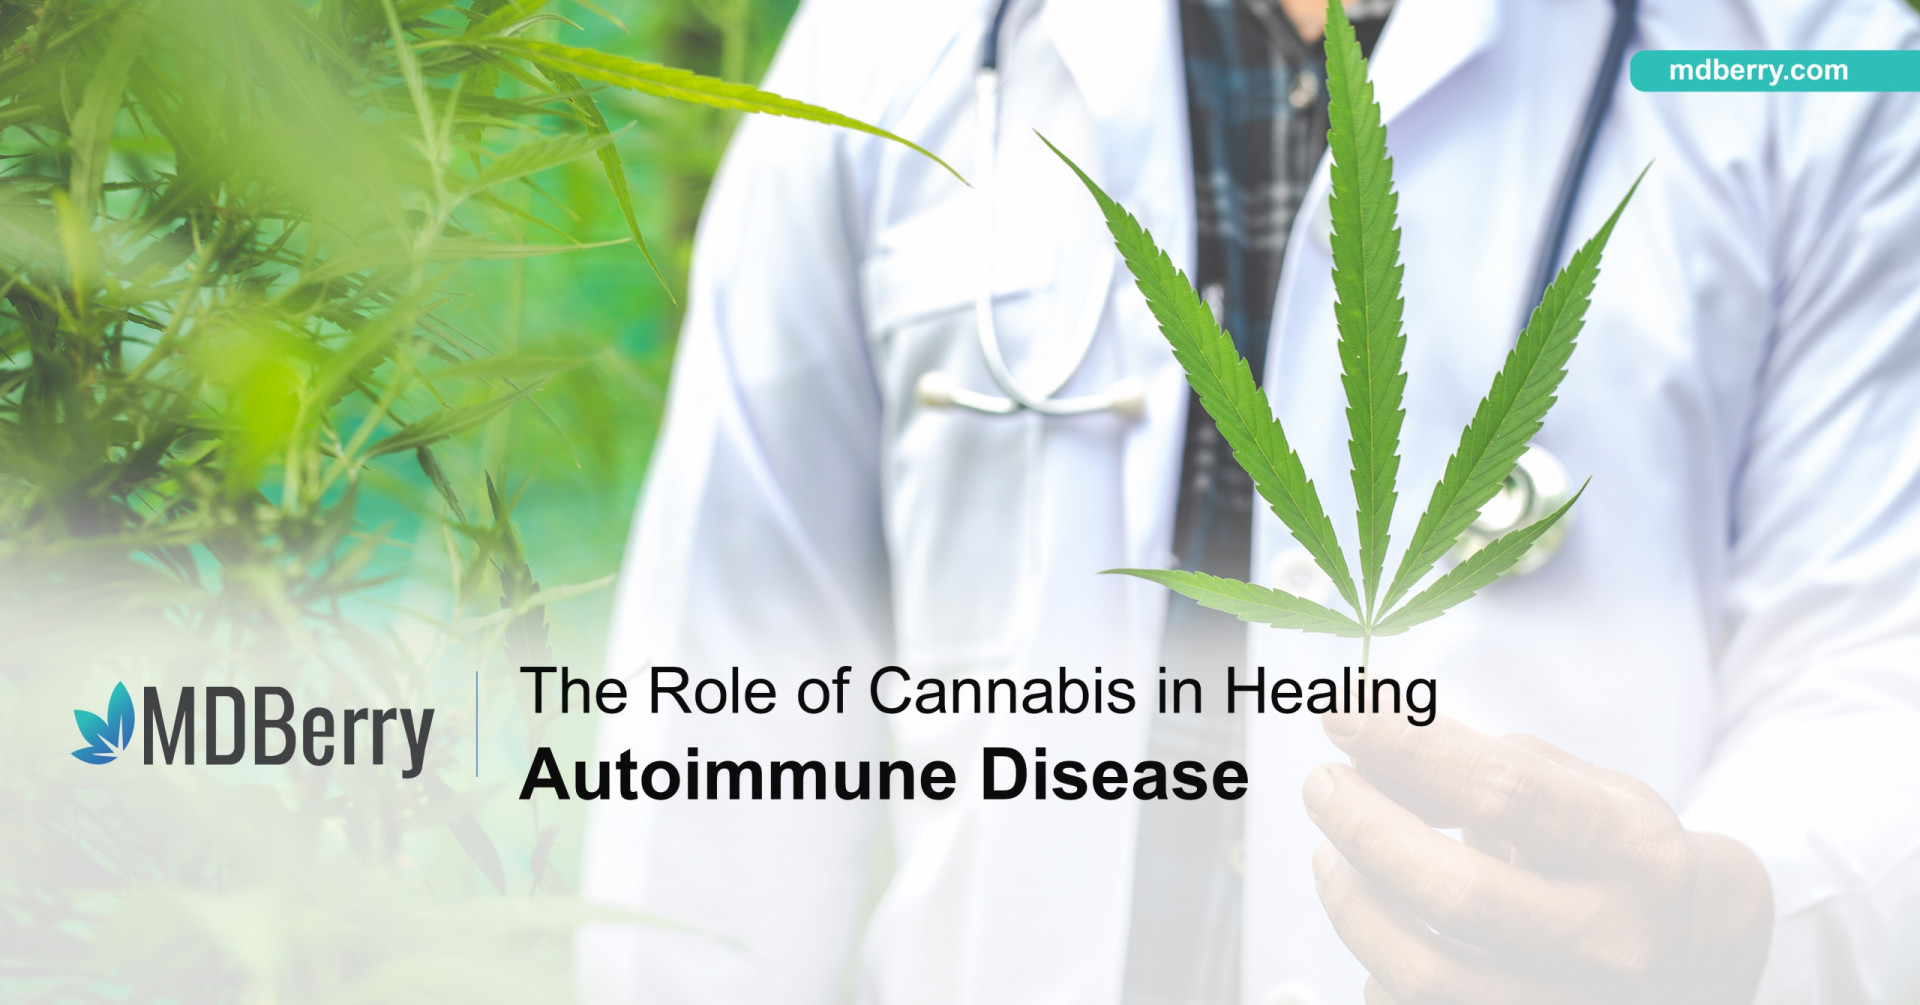 Cannabis and autoimmune disease